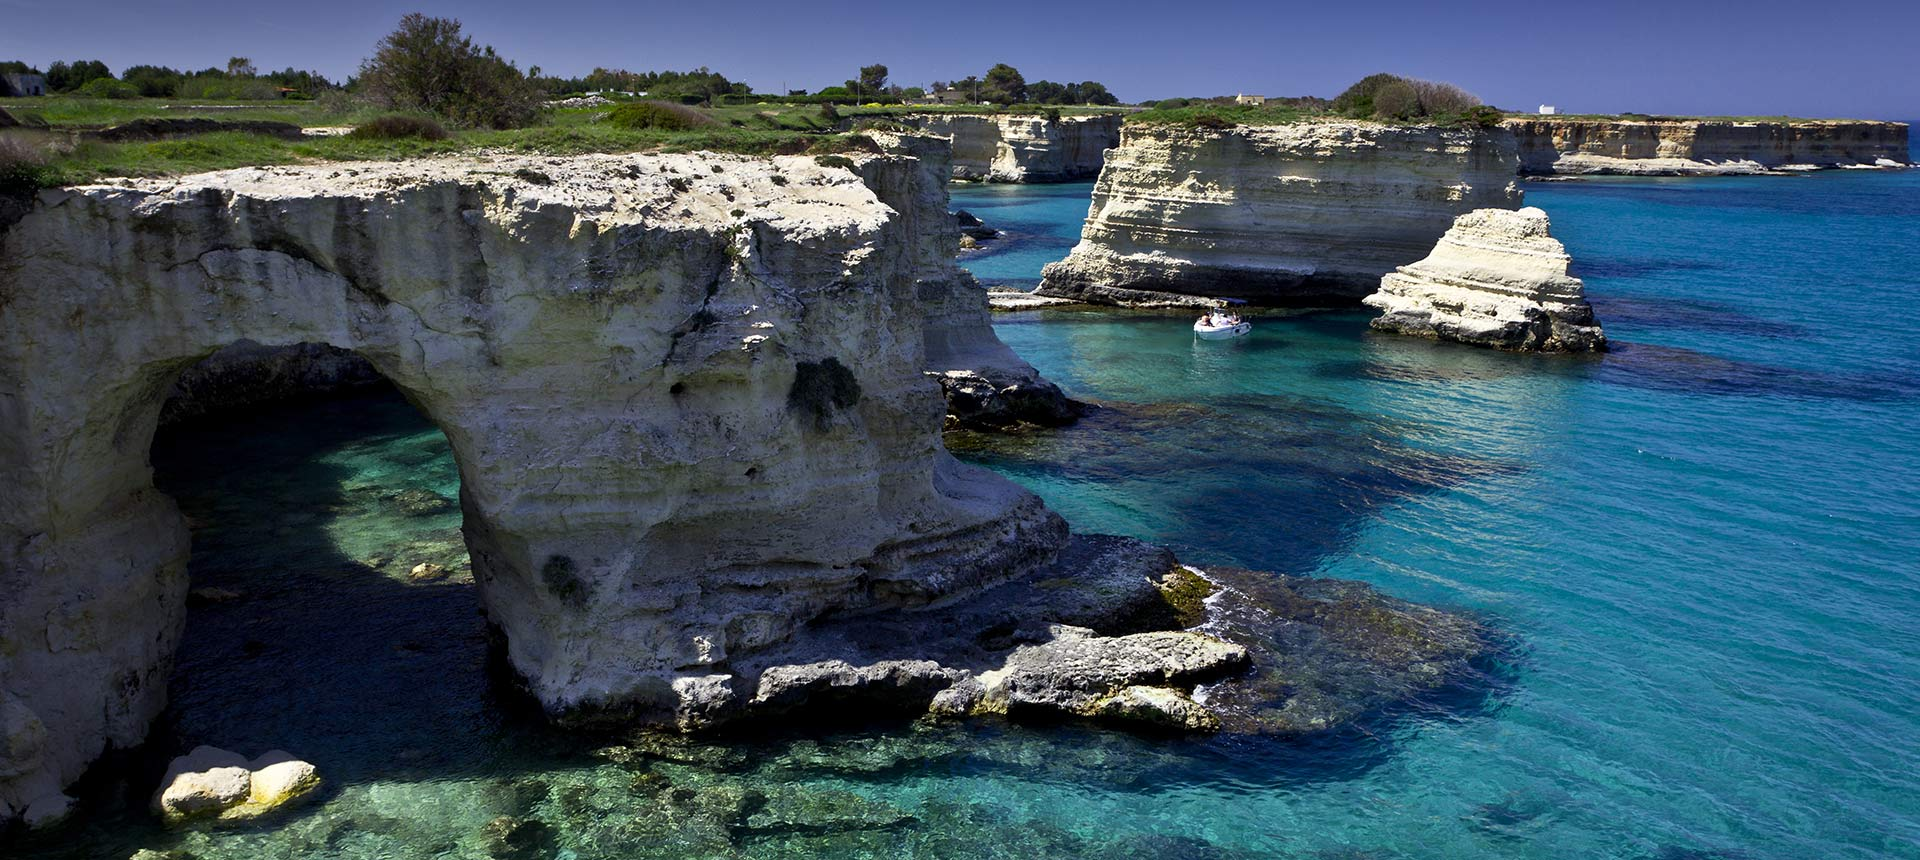 immobiliare Abitare in Salento